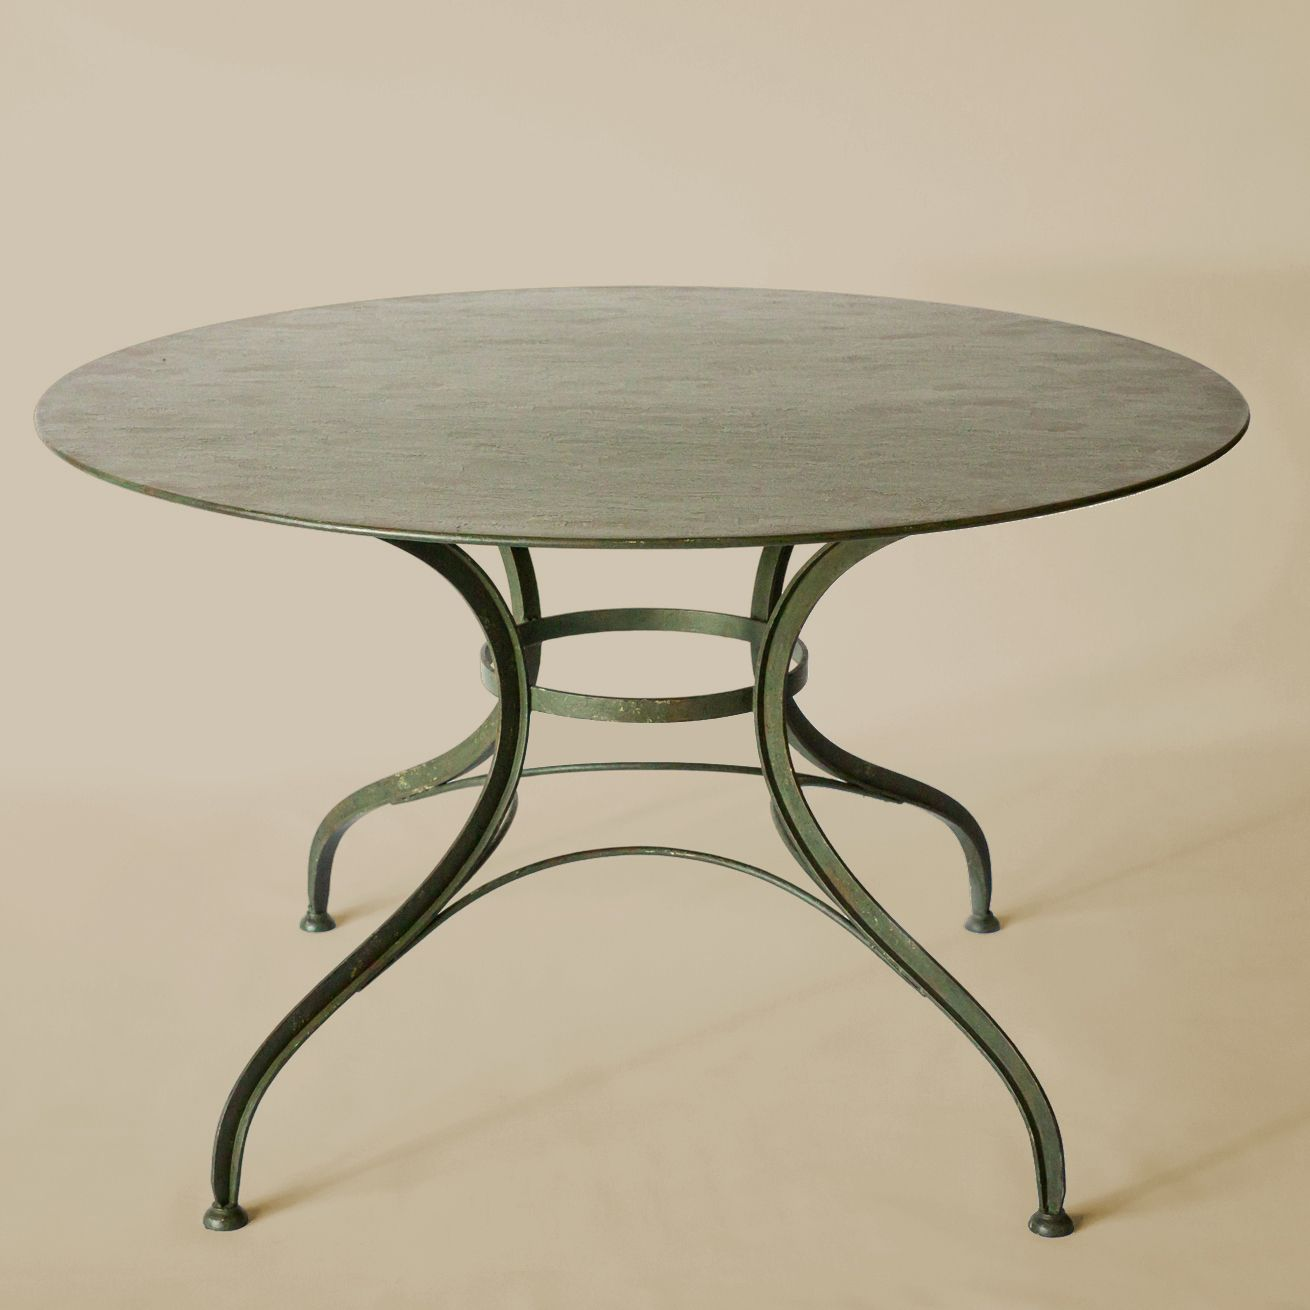 Rose tarlo 24 diameter antiqued green metal table